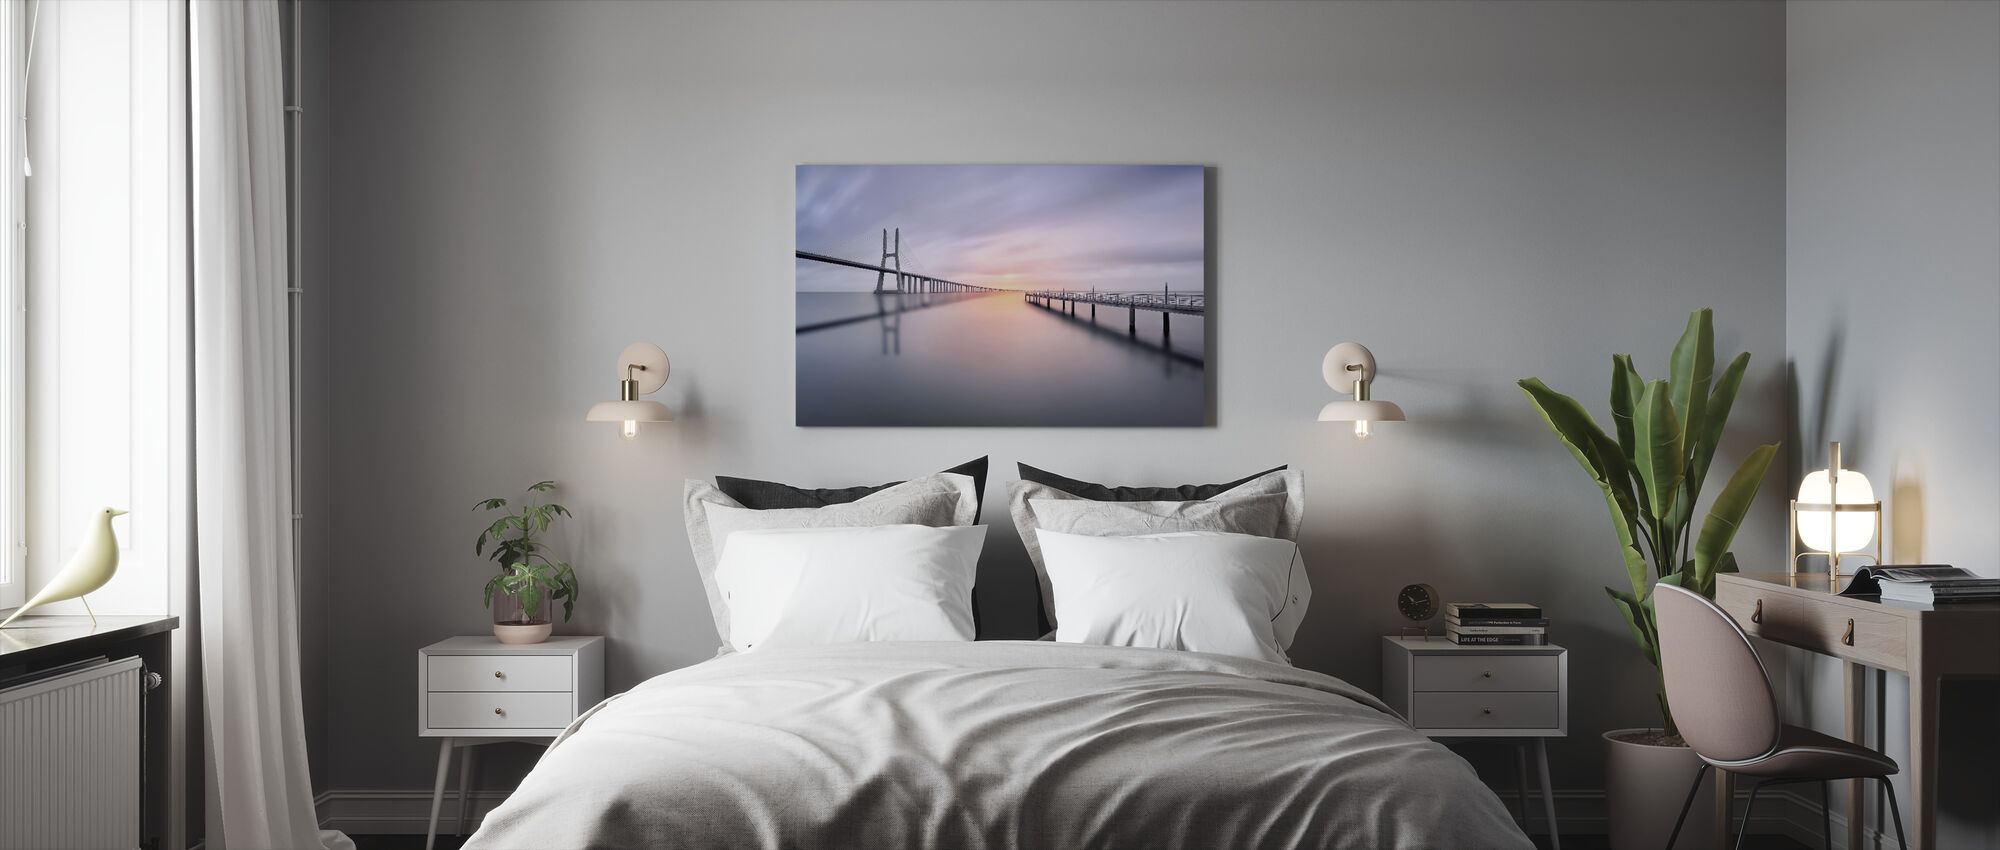 Vasco de Gama - Canvas print - Bedroom